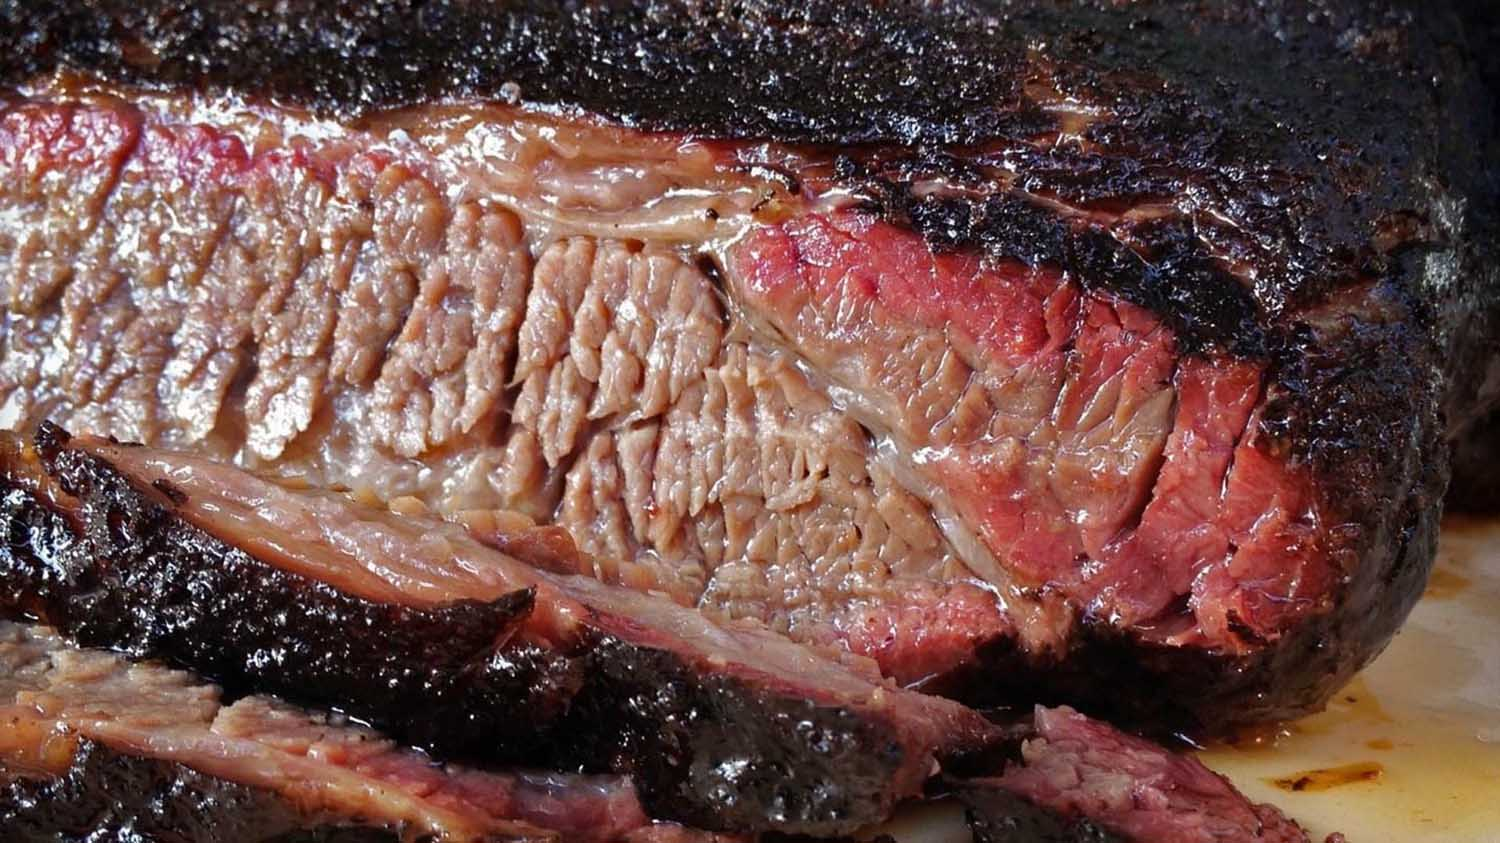 Cornhusker Starts Slow Smokin' in Bellevue with New Dickey's Barbecue Pit